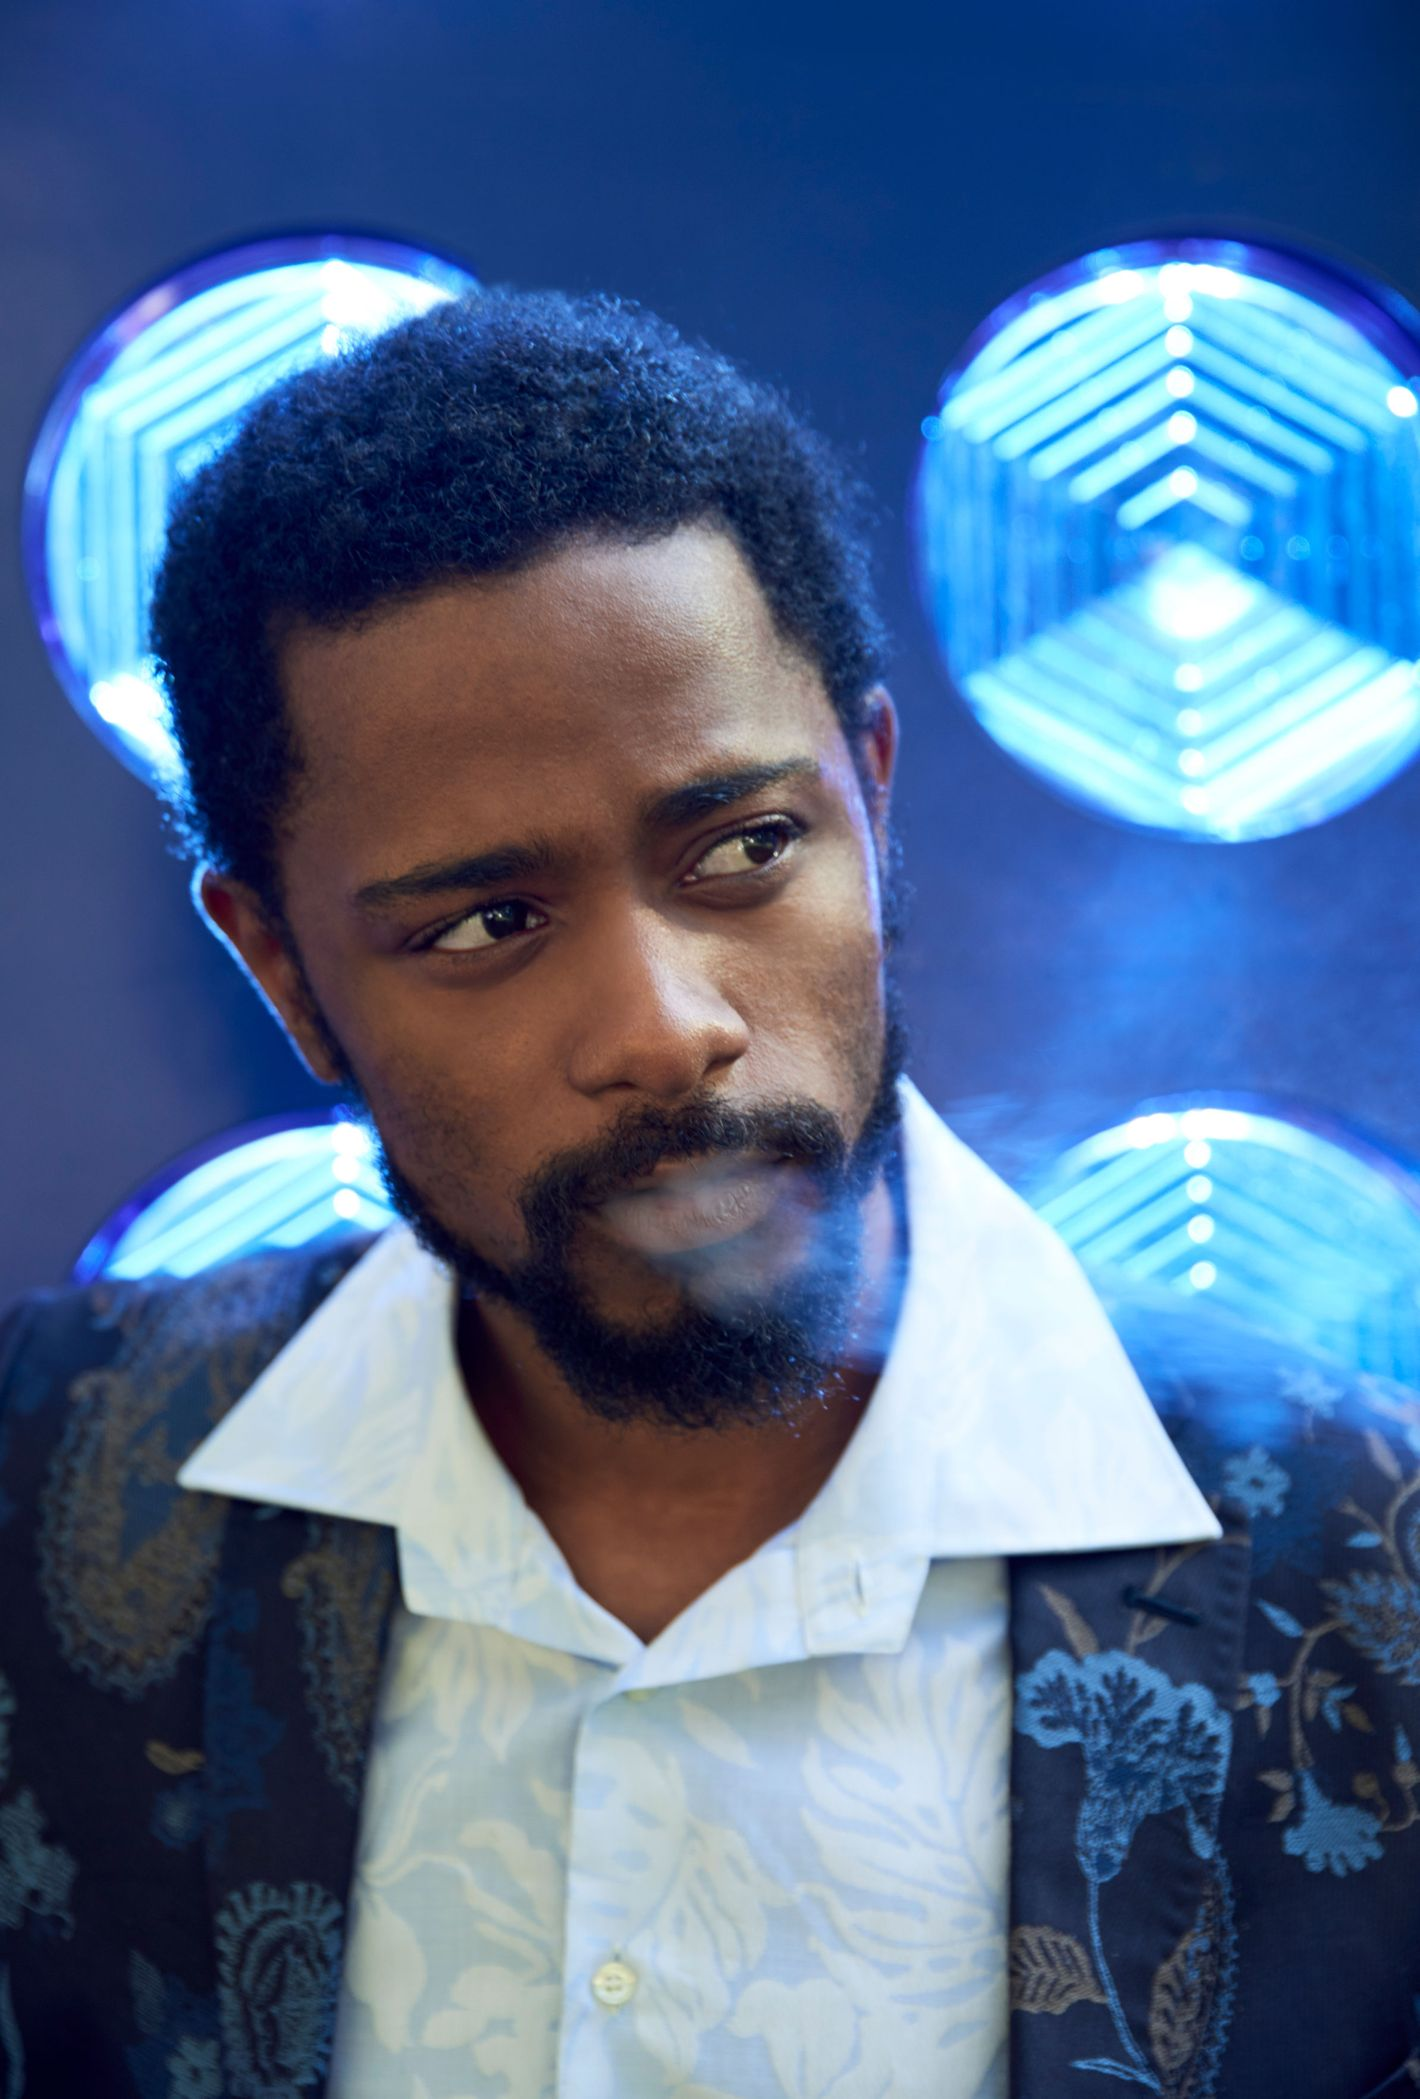 Keith Stanfield smoking a cigarette (or weed)